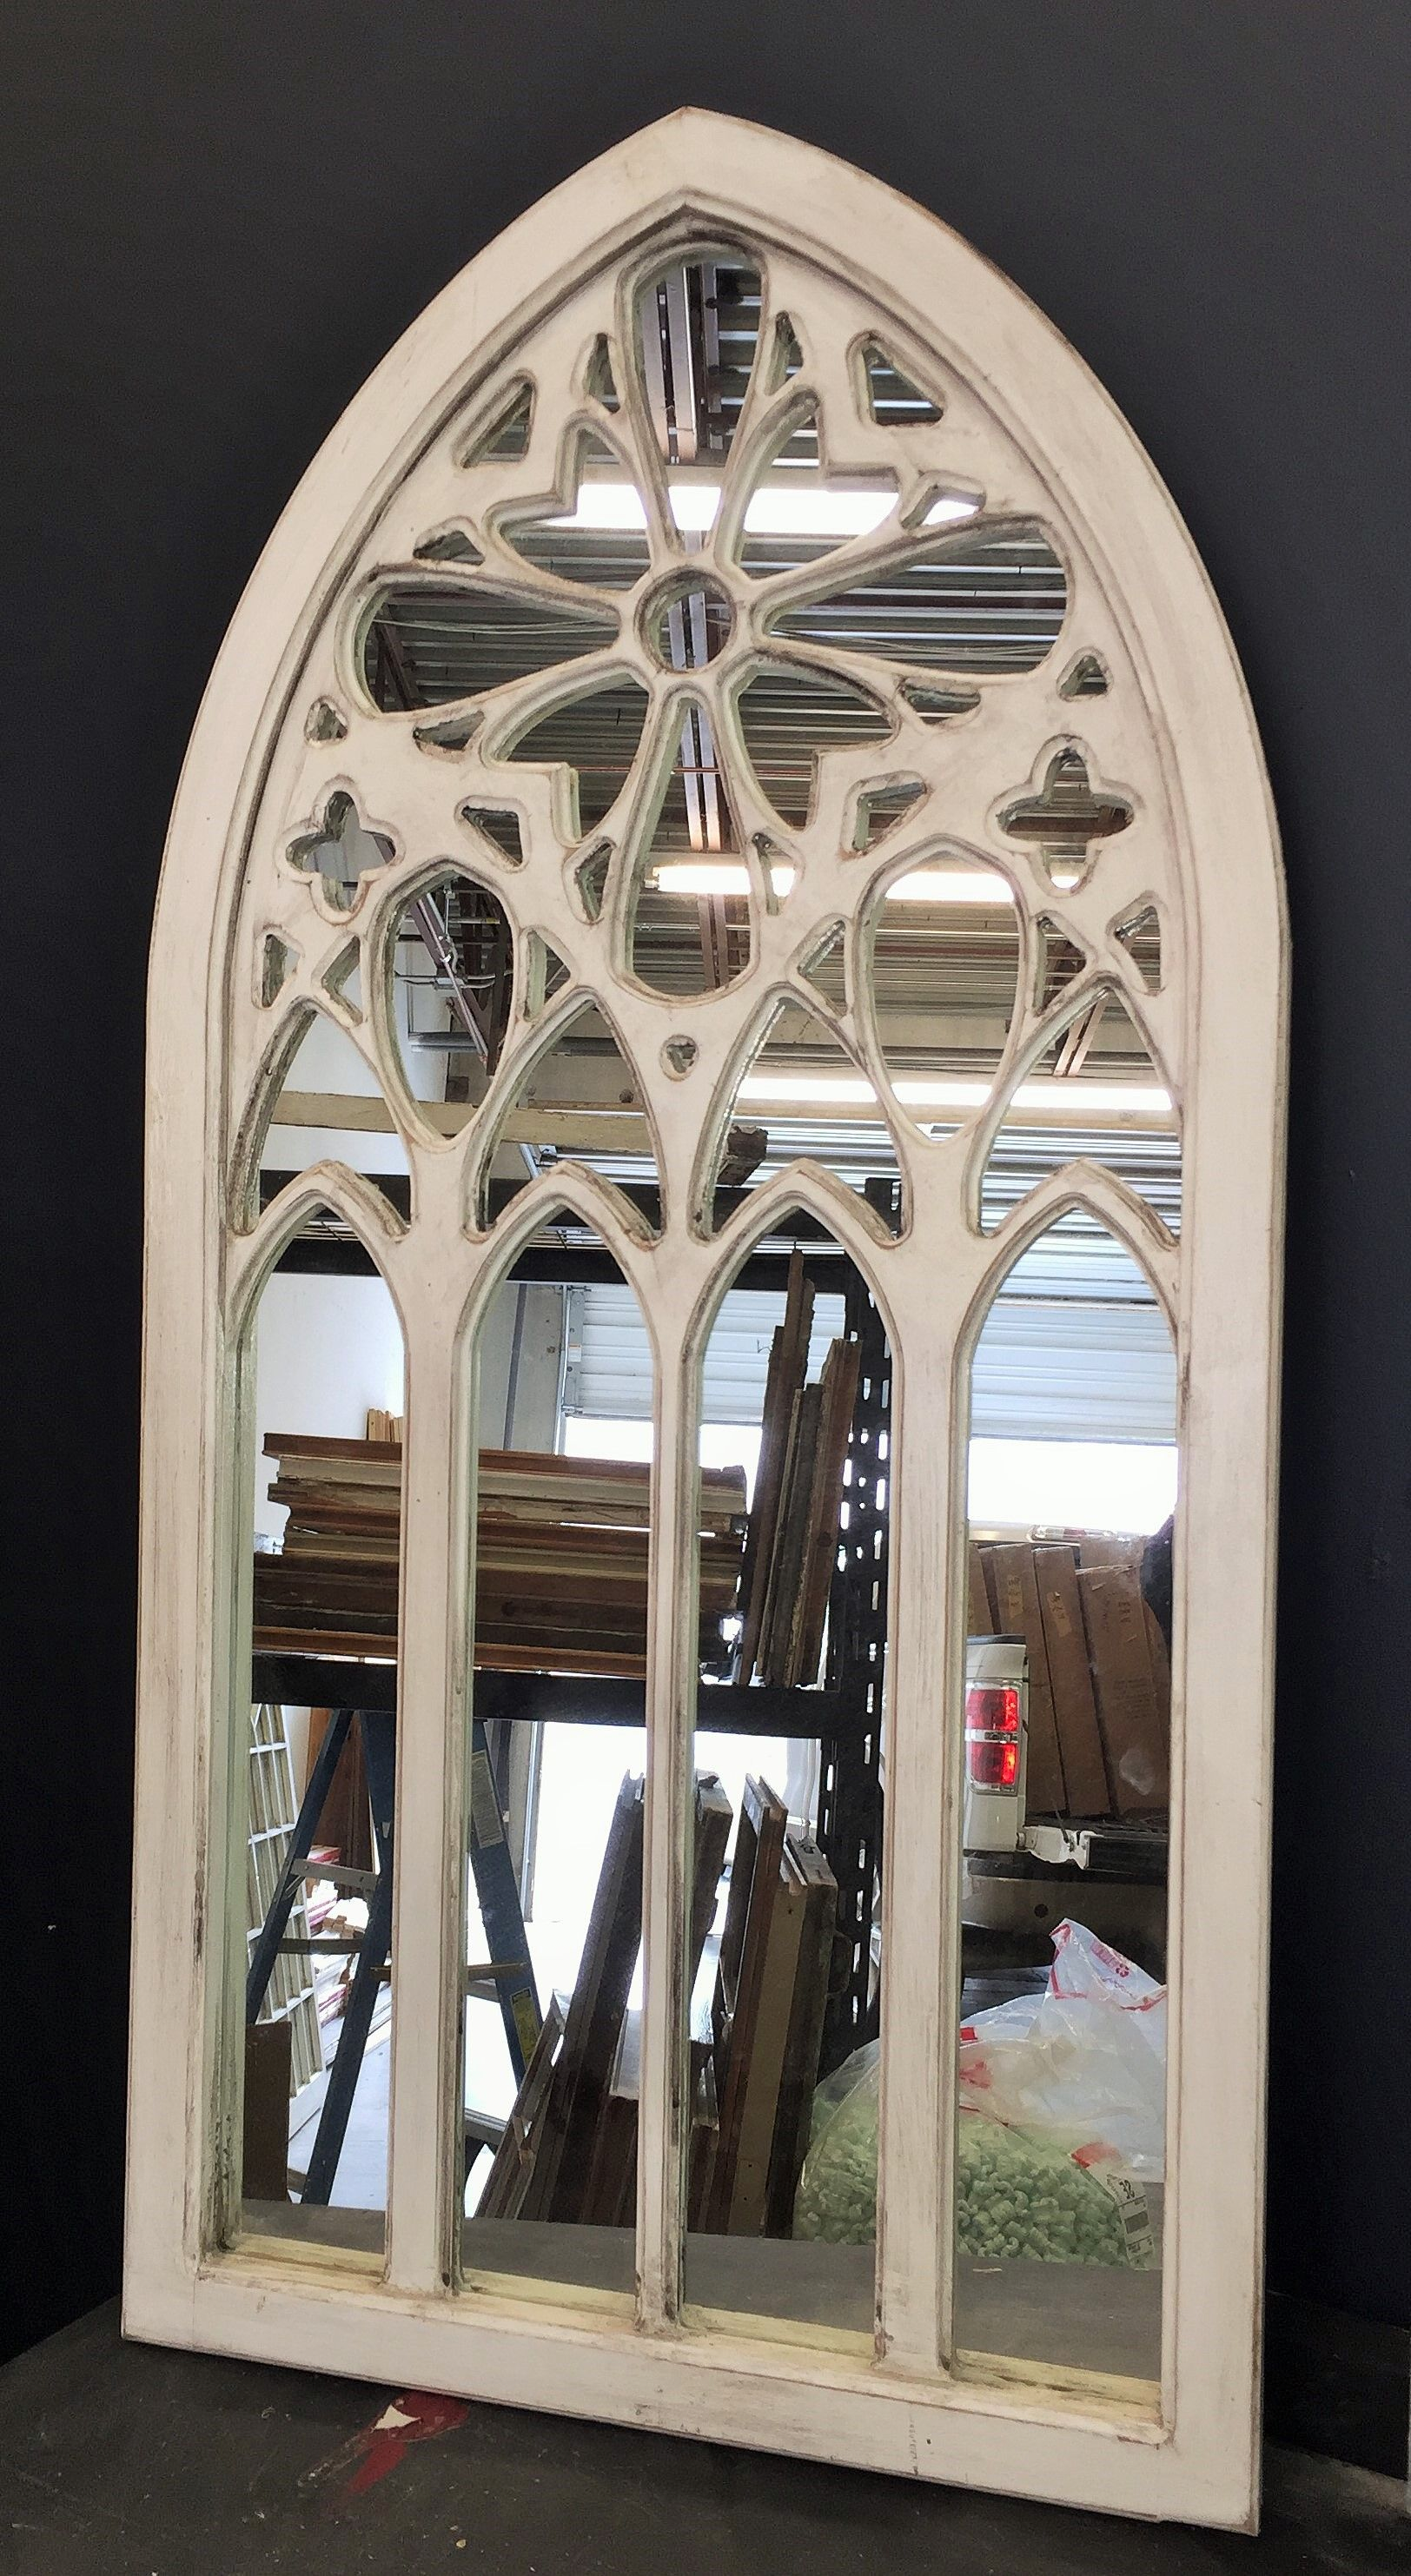 White Arched Window Mirror Handmade Rustic Window Mirror Wall Mirror Home Decor Mirror Mirror Wall Arched Window Mirror Frame Wall Decor